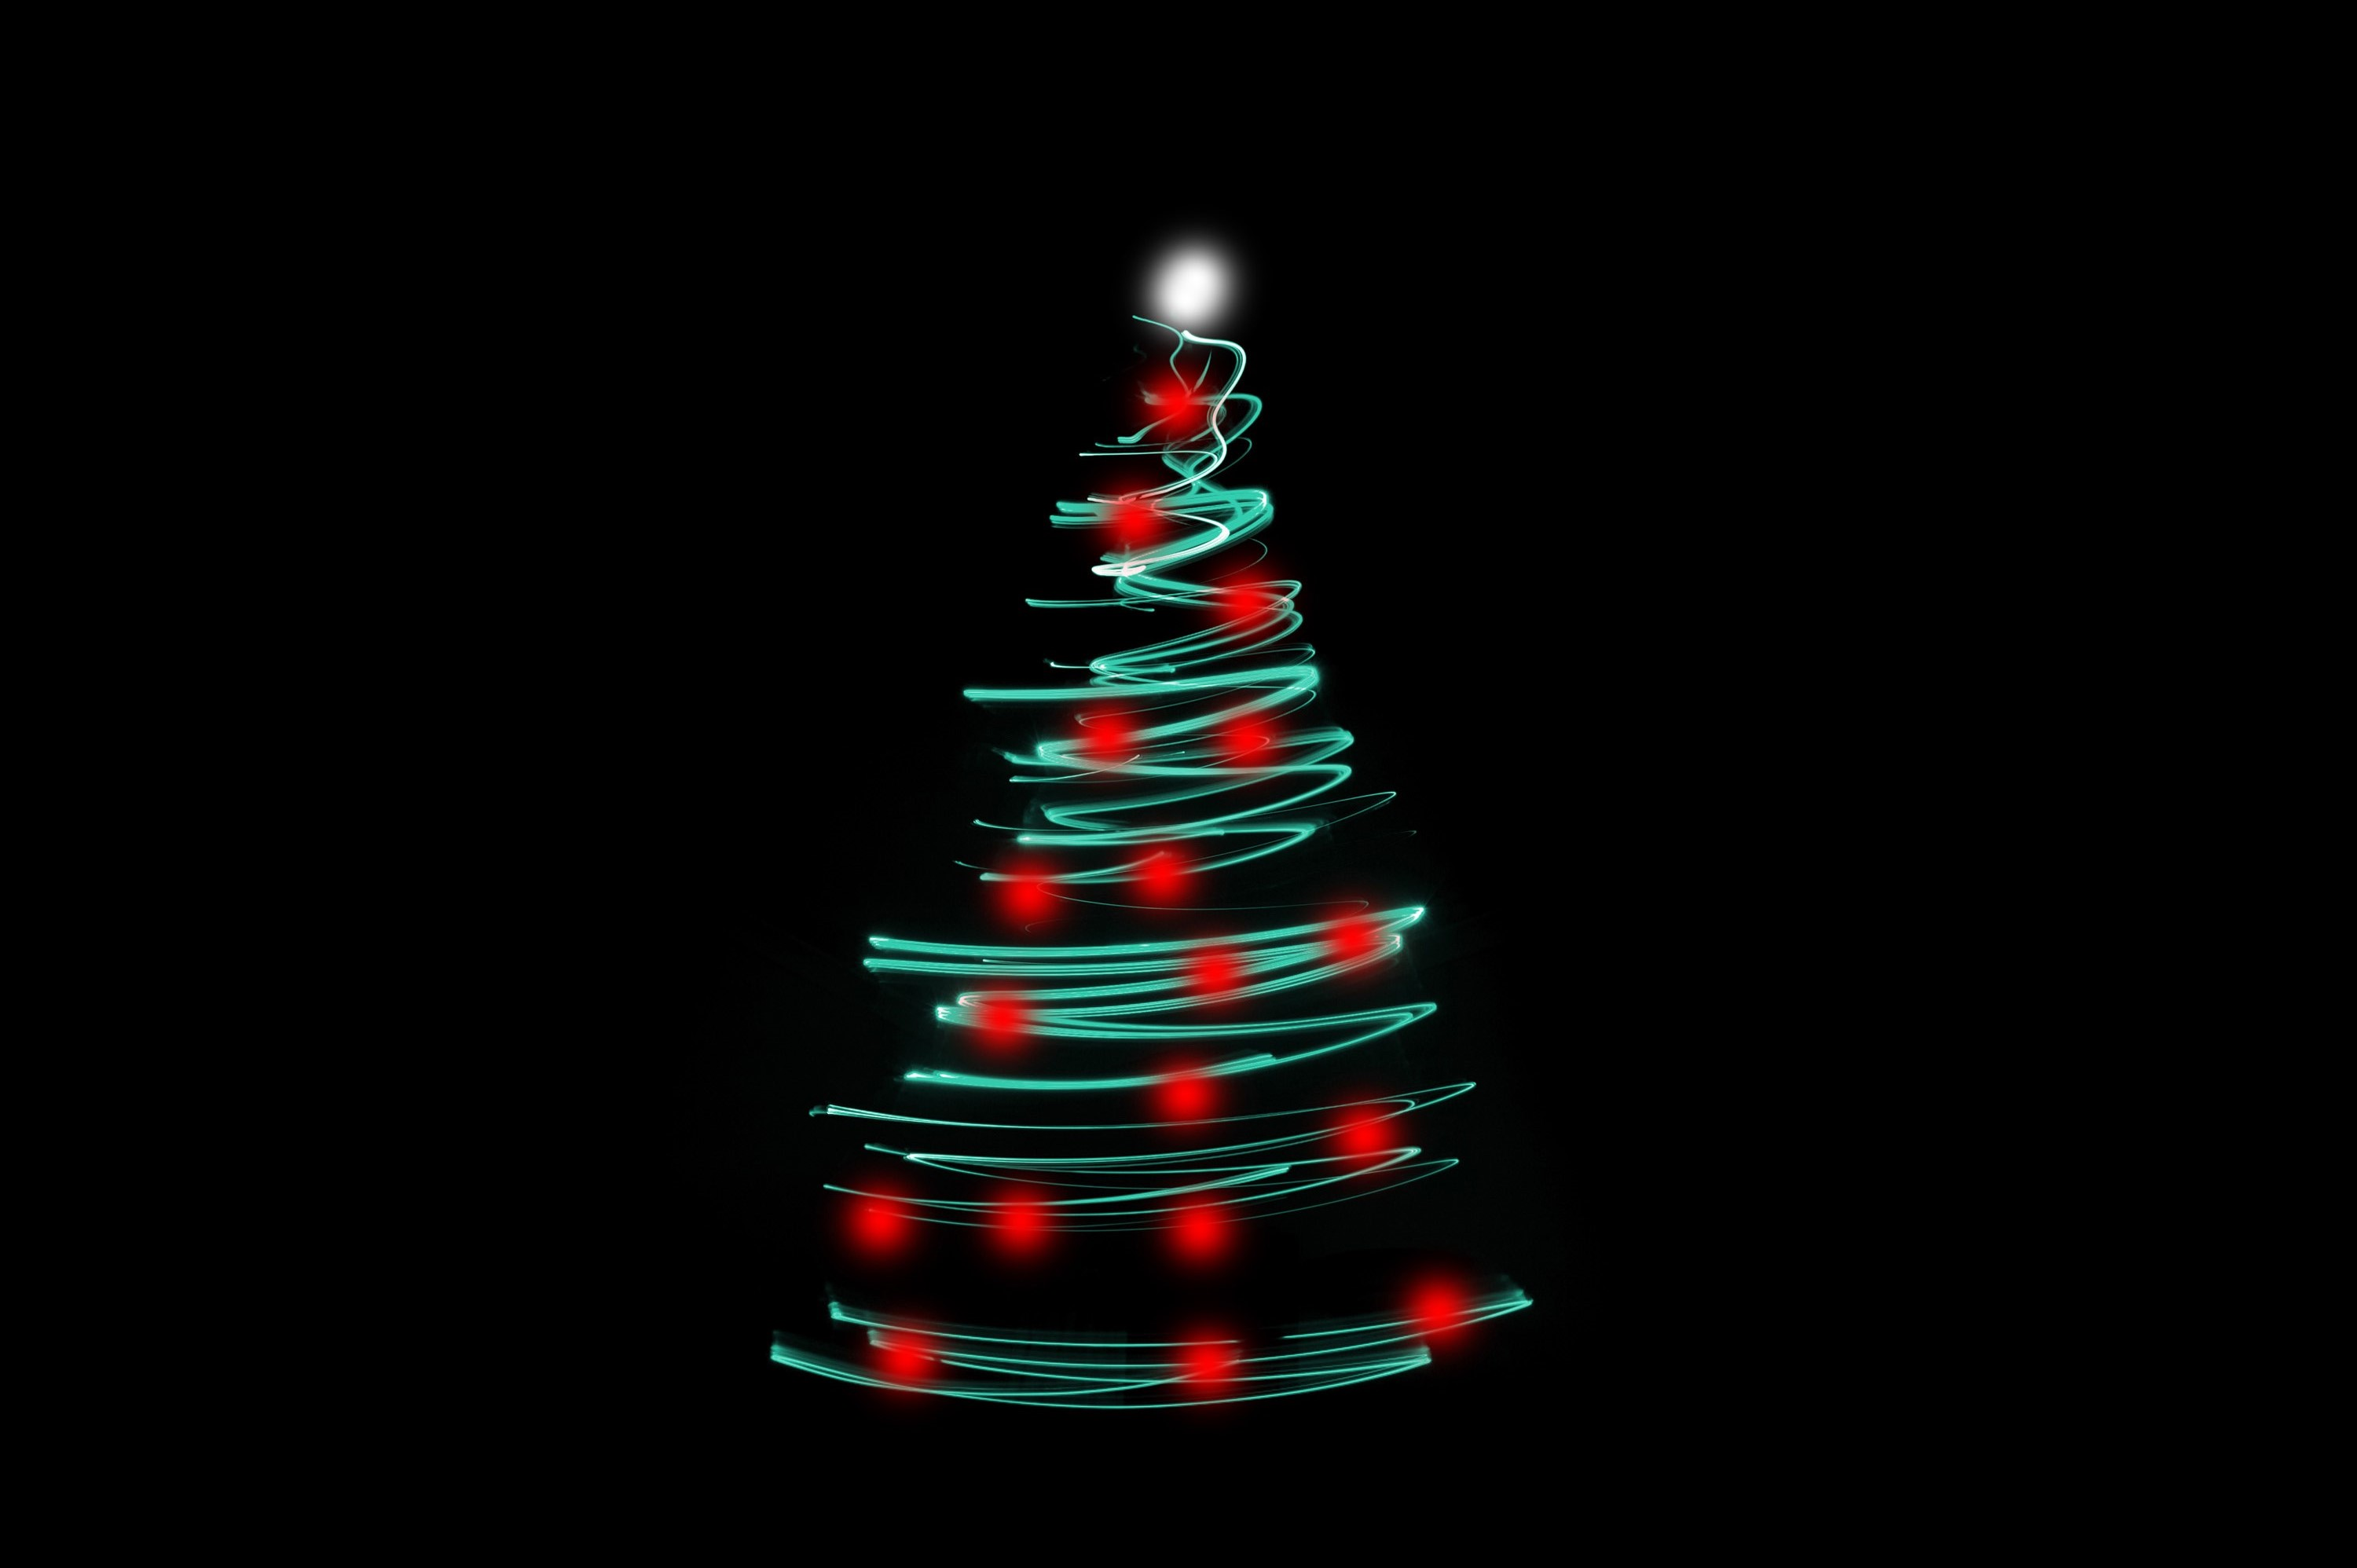 christmas tree light with a modern abstract zig zag shape depicting a conical christmas tree